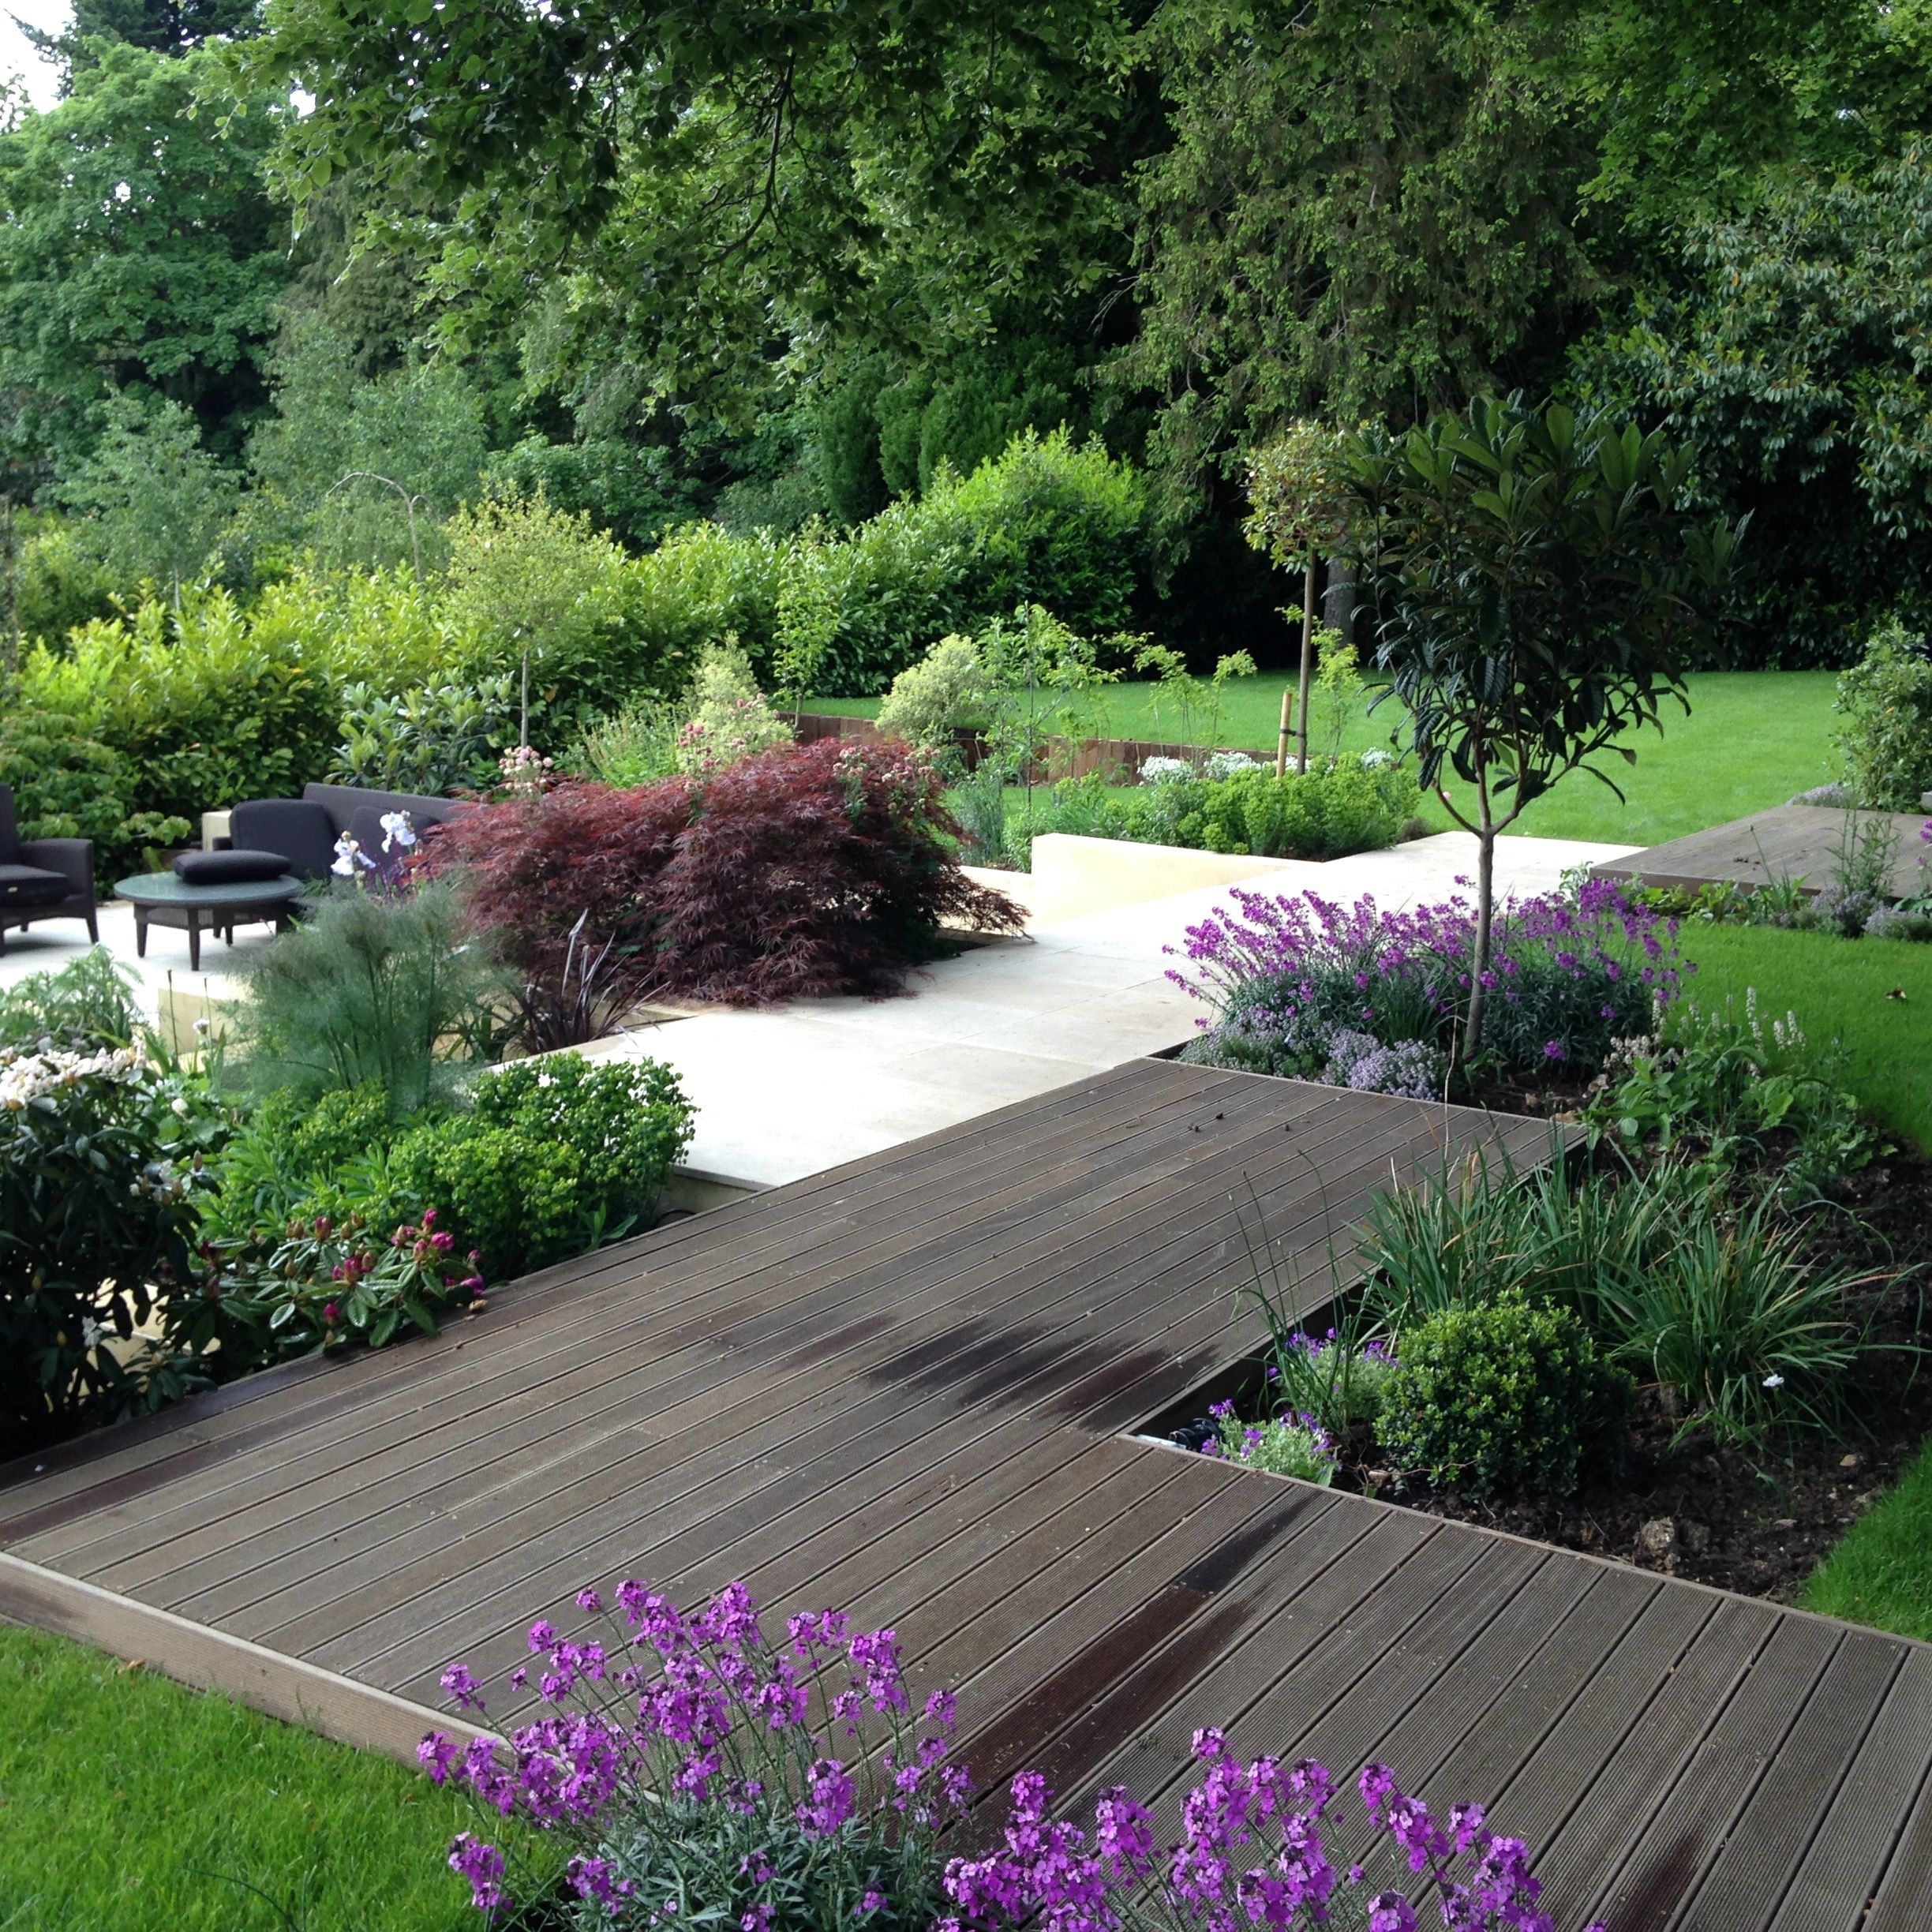 Unexpected Landscape Design Elements Like Putting Greens, Water Features #Landscaping